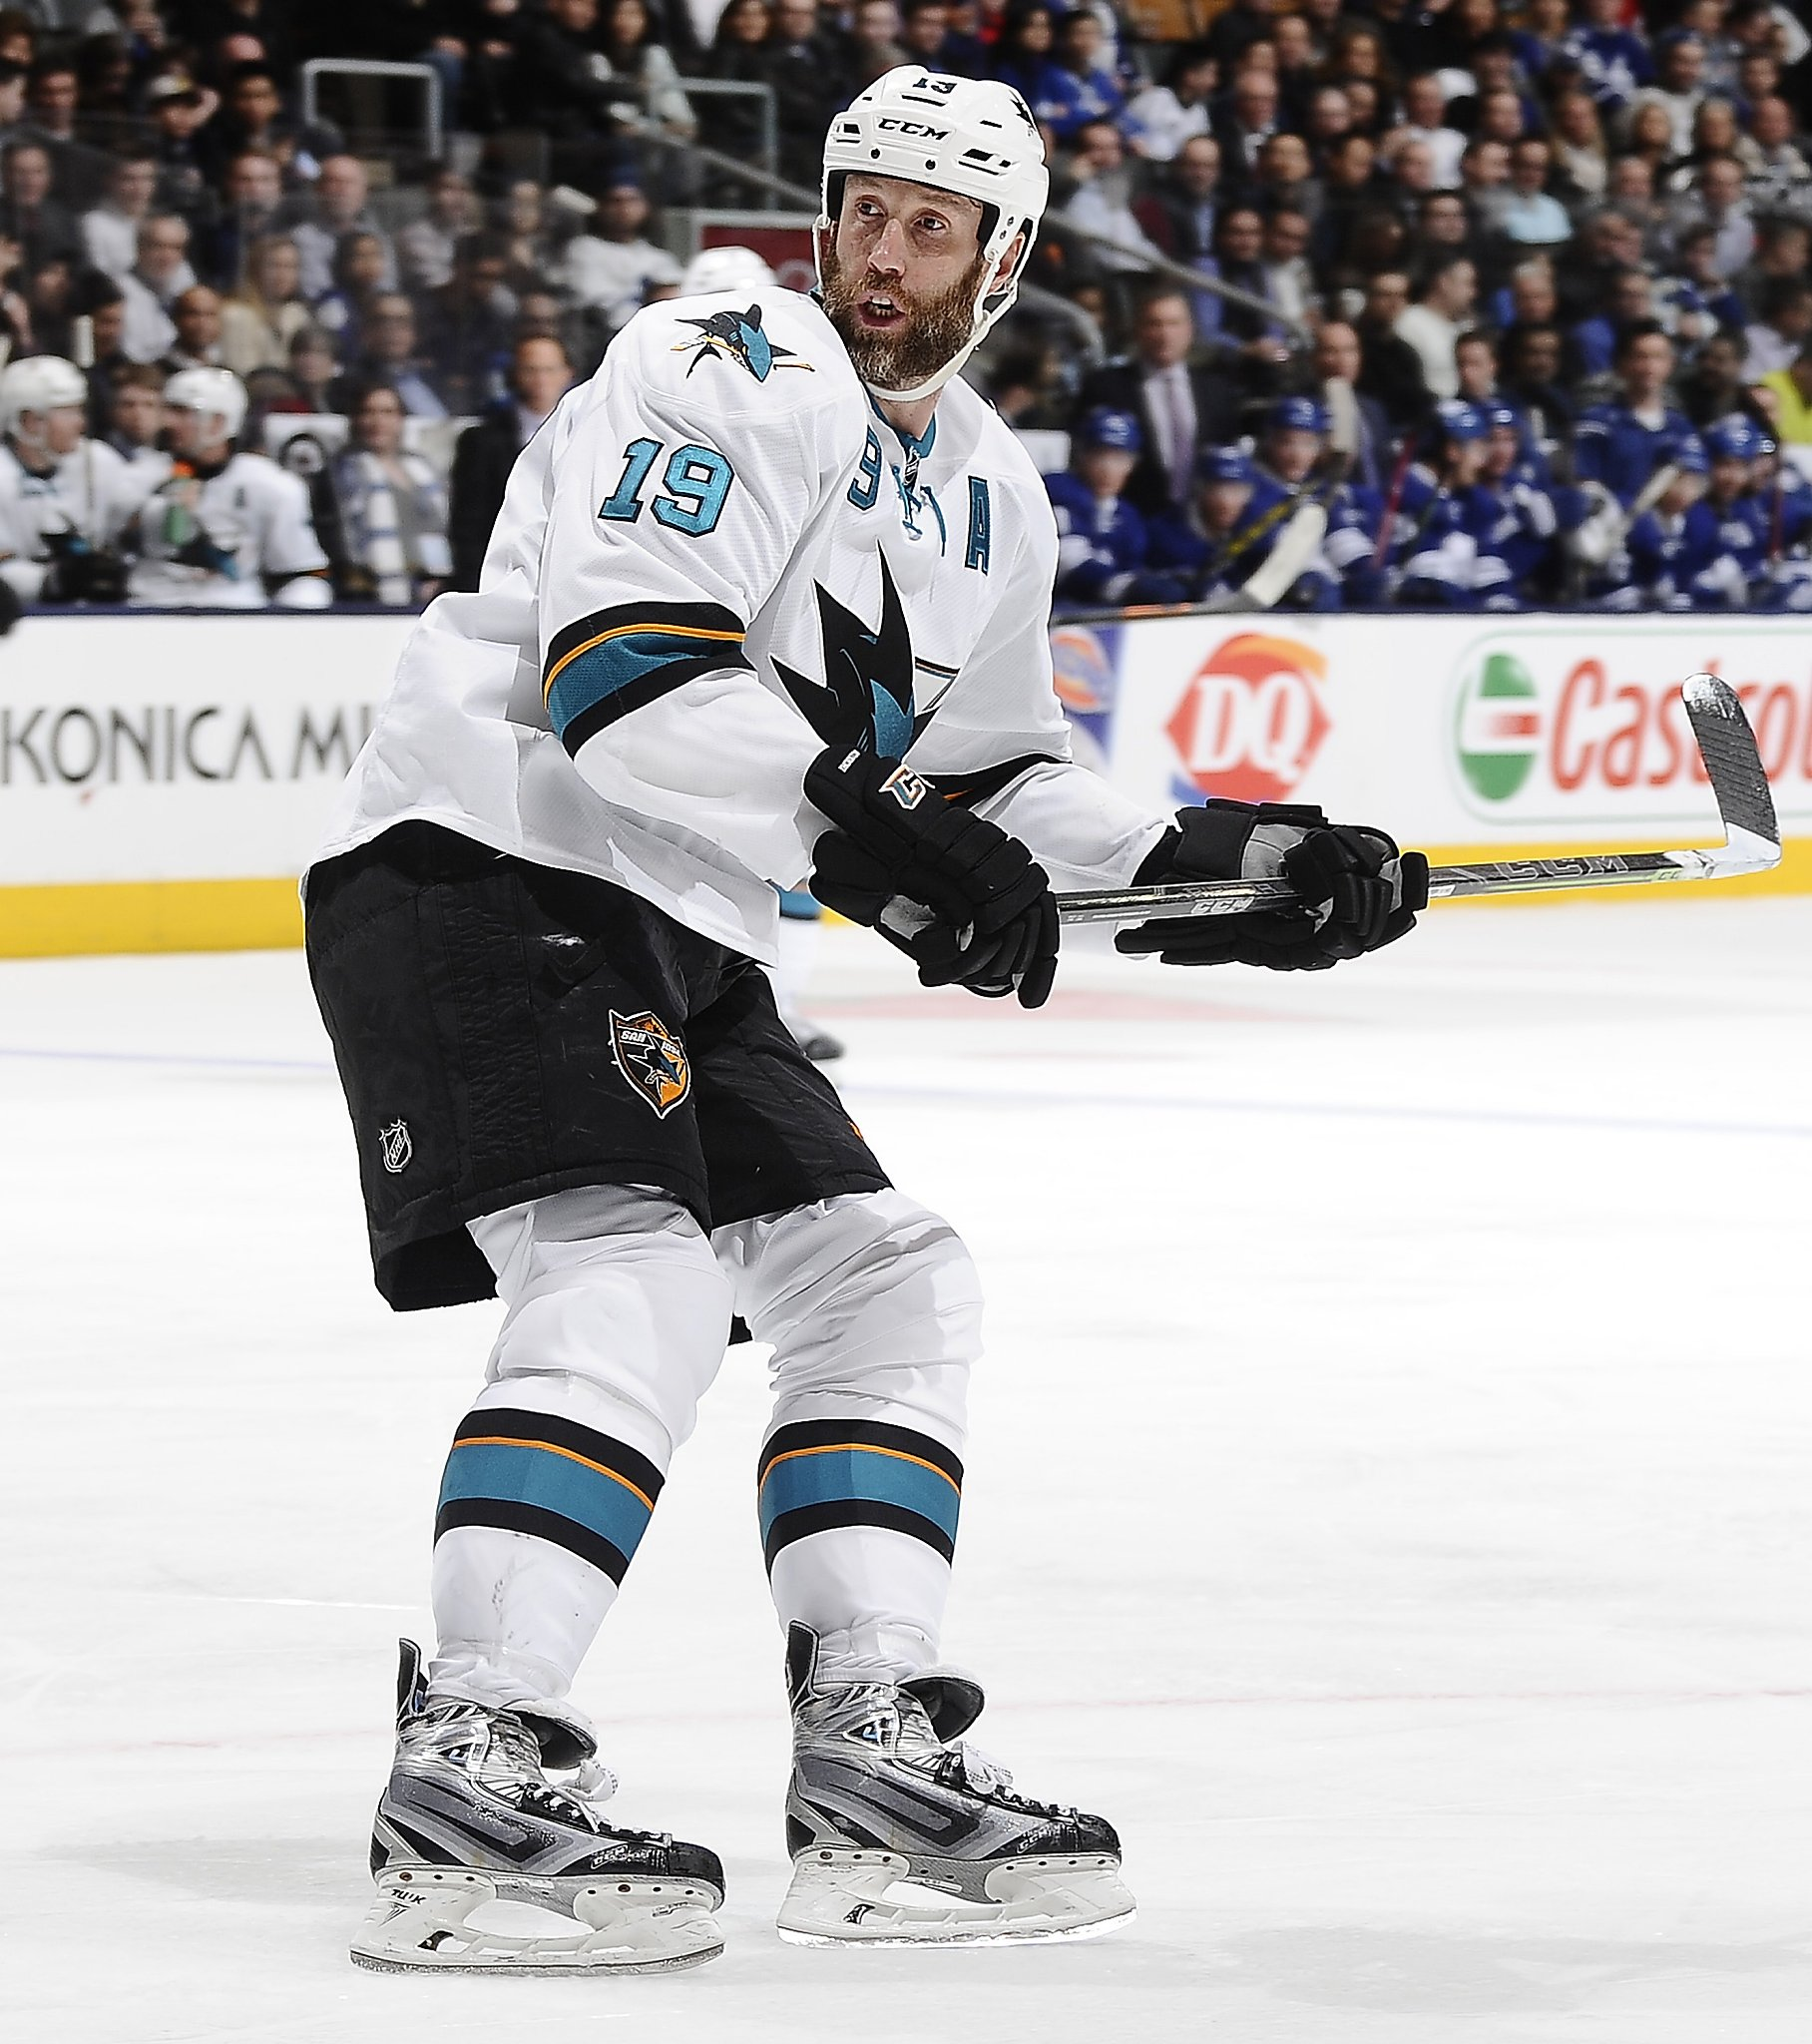 new styles 401f4 04cd4 Sharks' Joe Thornton stands tall by any measure ...